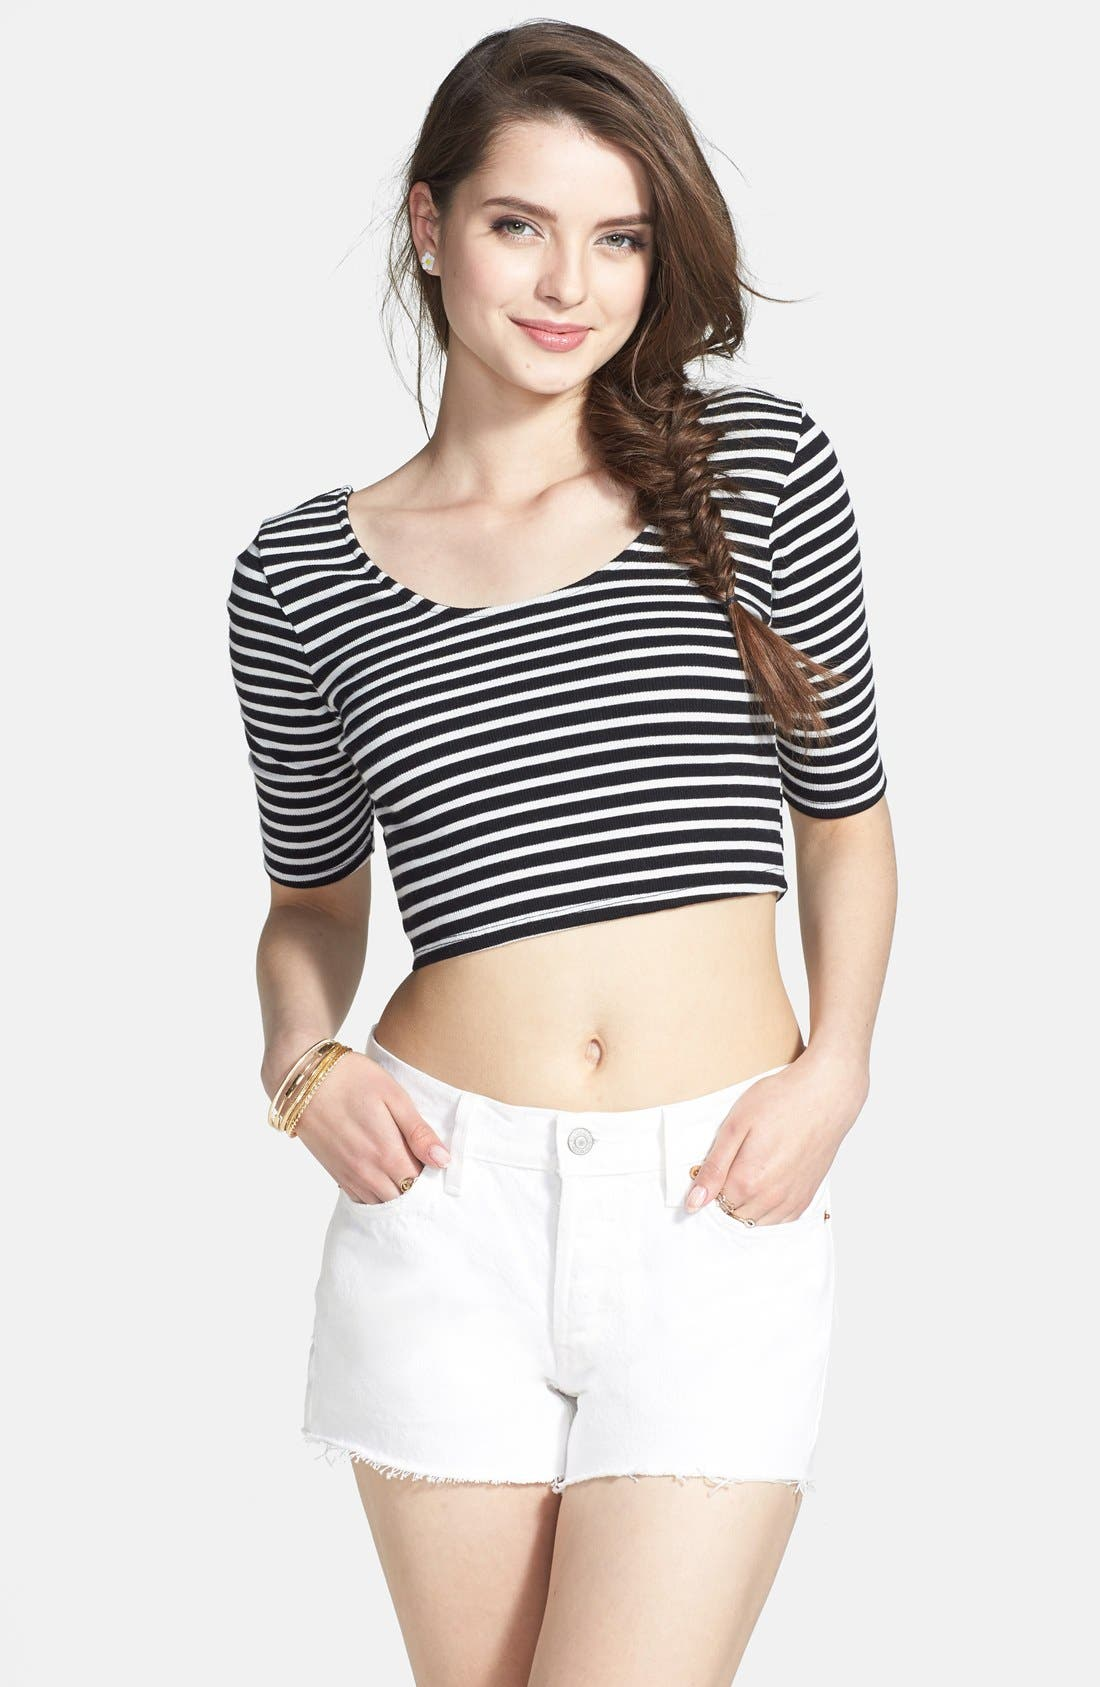 Alternate Image 1 Selected - Volcom 'Out There' Stripe Crop Top (Juniors)